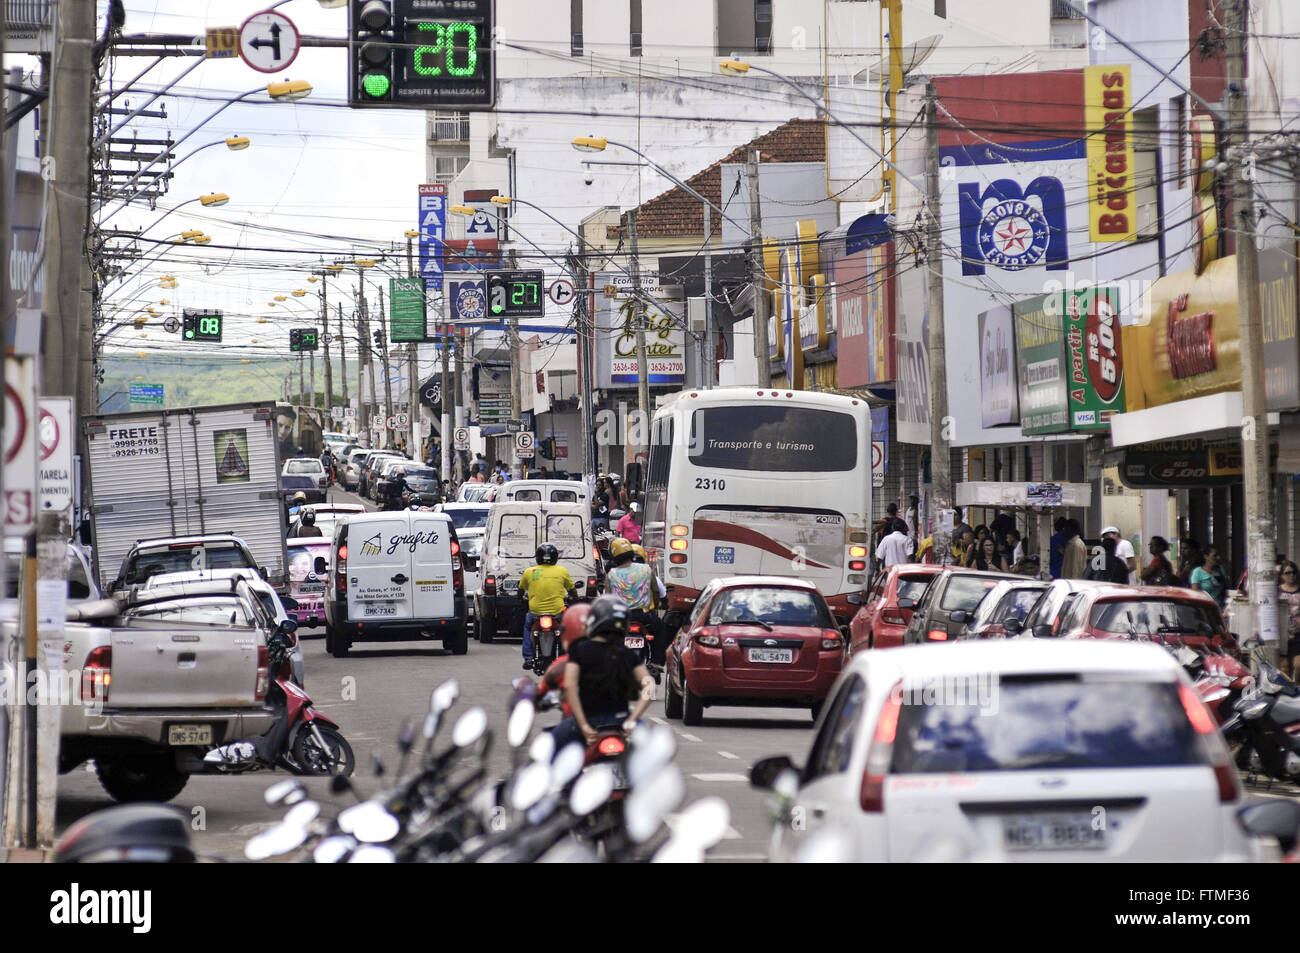 Traffic of vehicles in Goias Avenue - the main avenue of the city of commerce - Stock Image